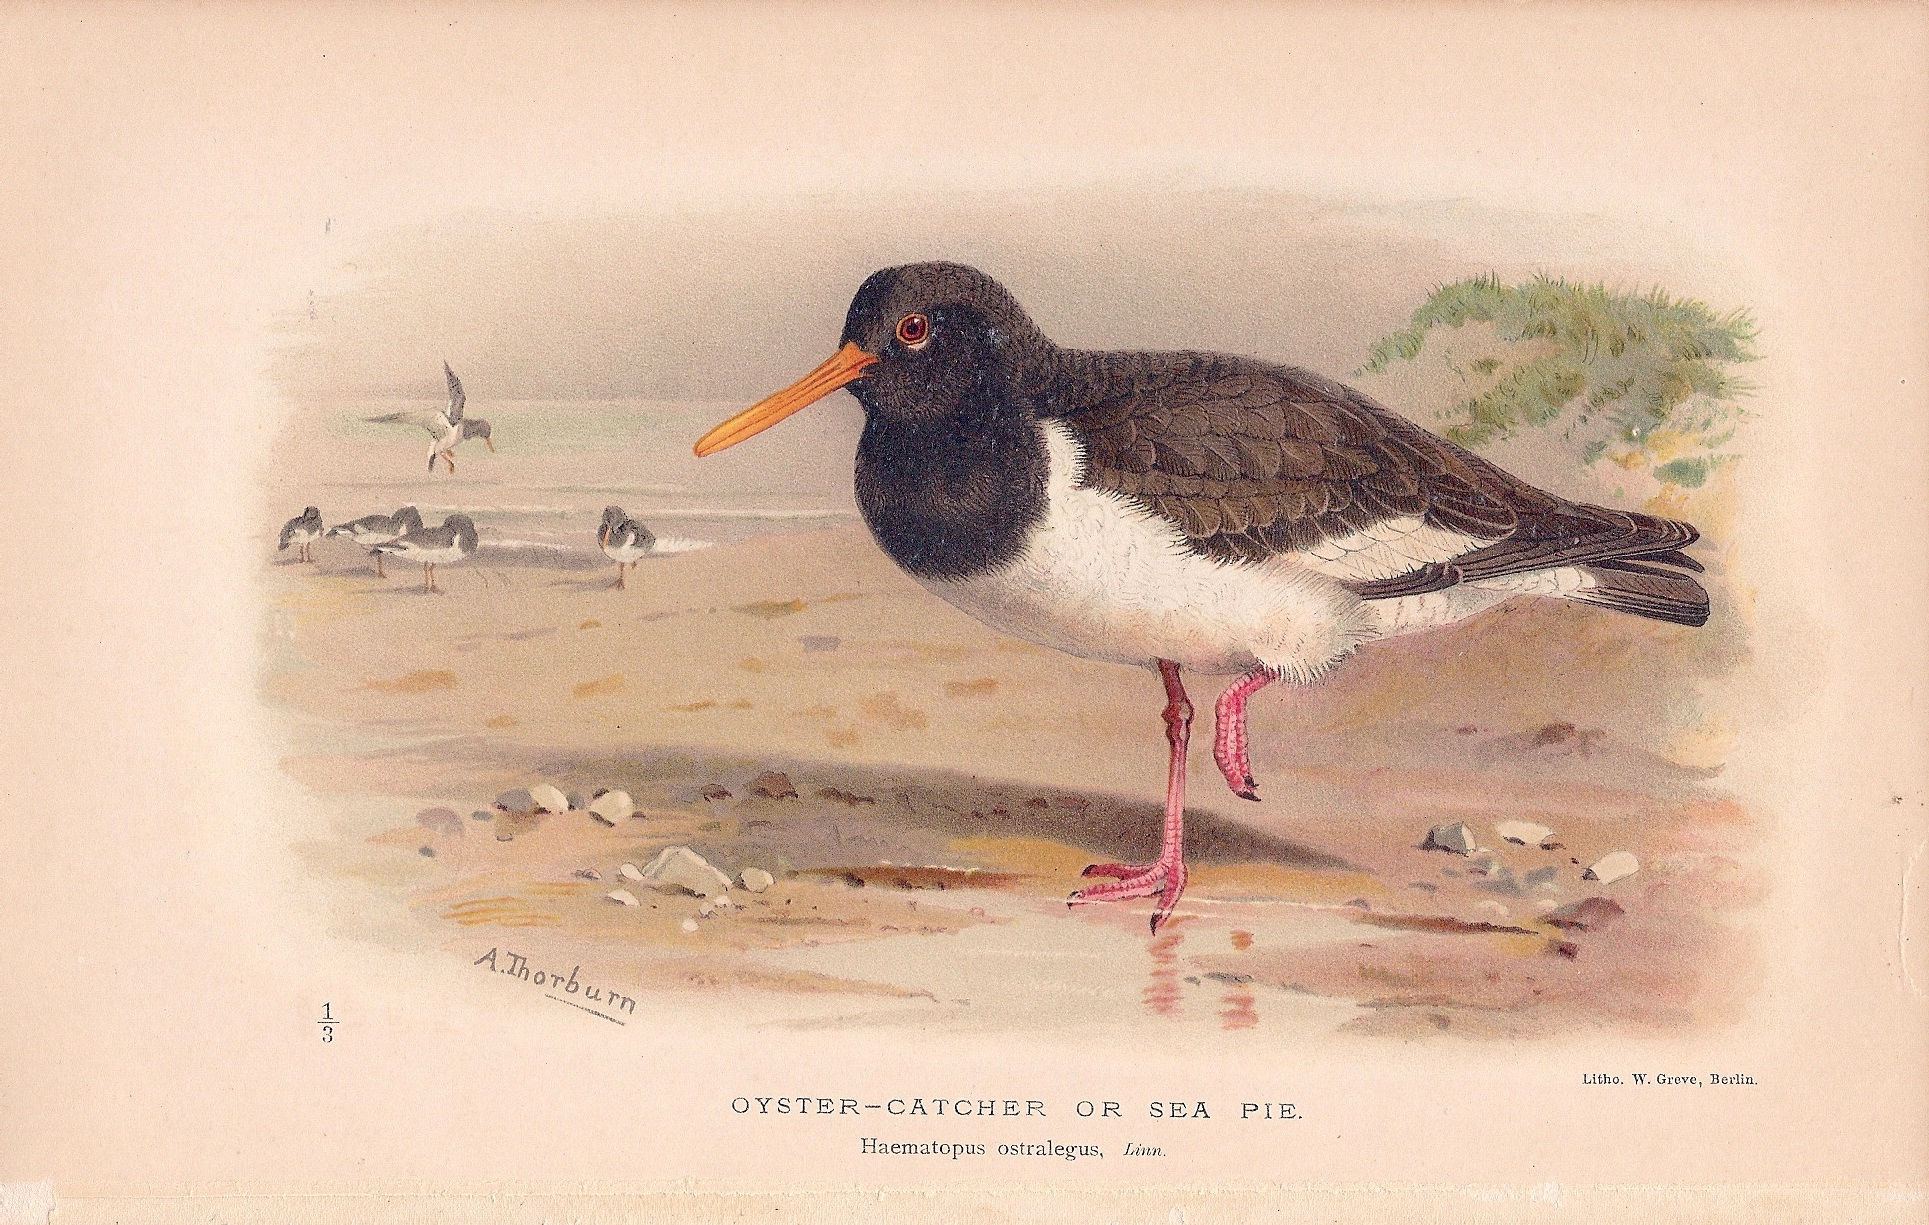 Oyster-Catcher or Sea Pie